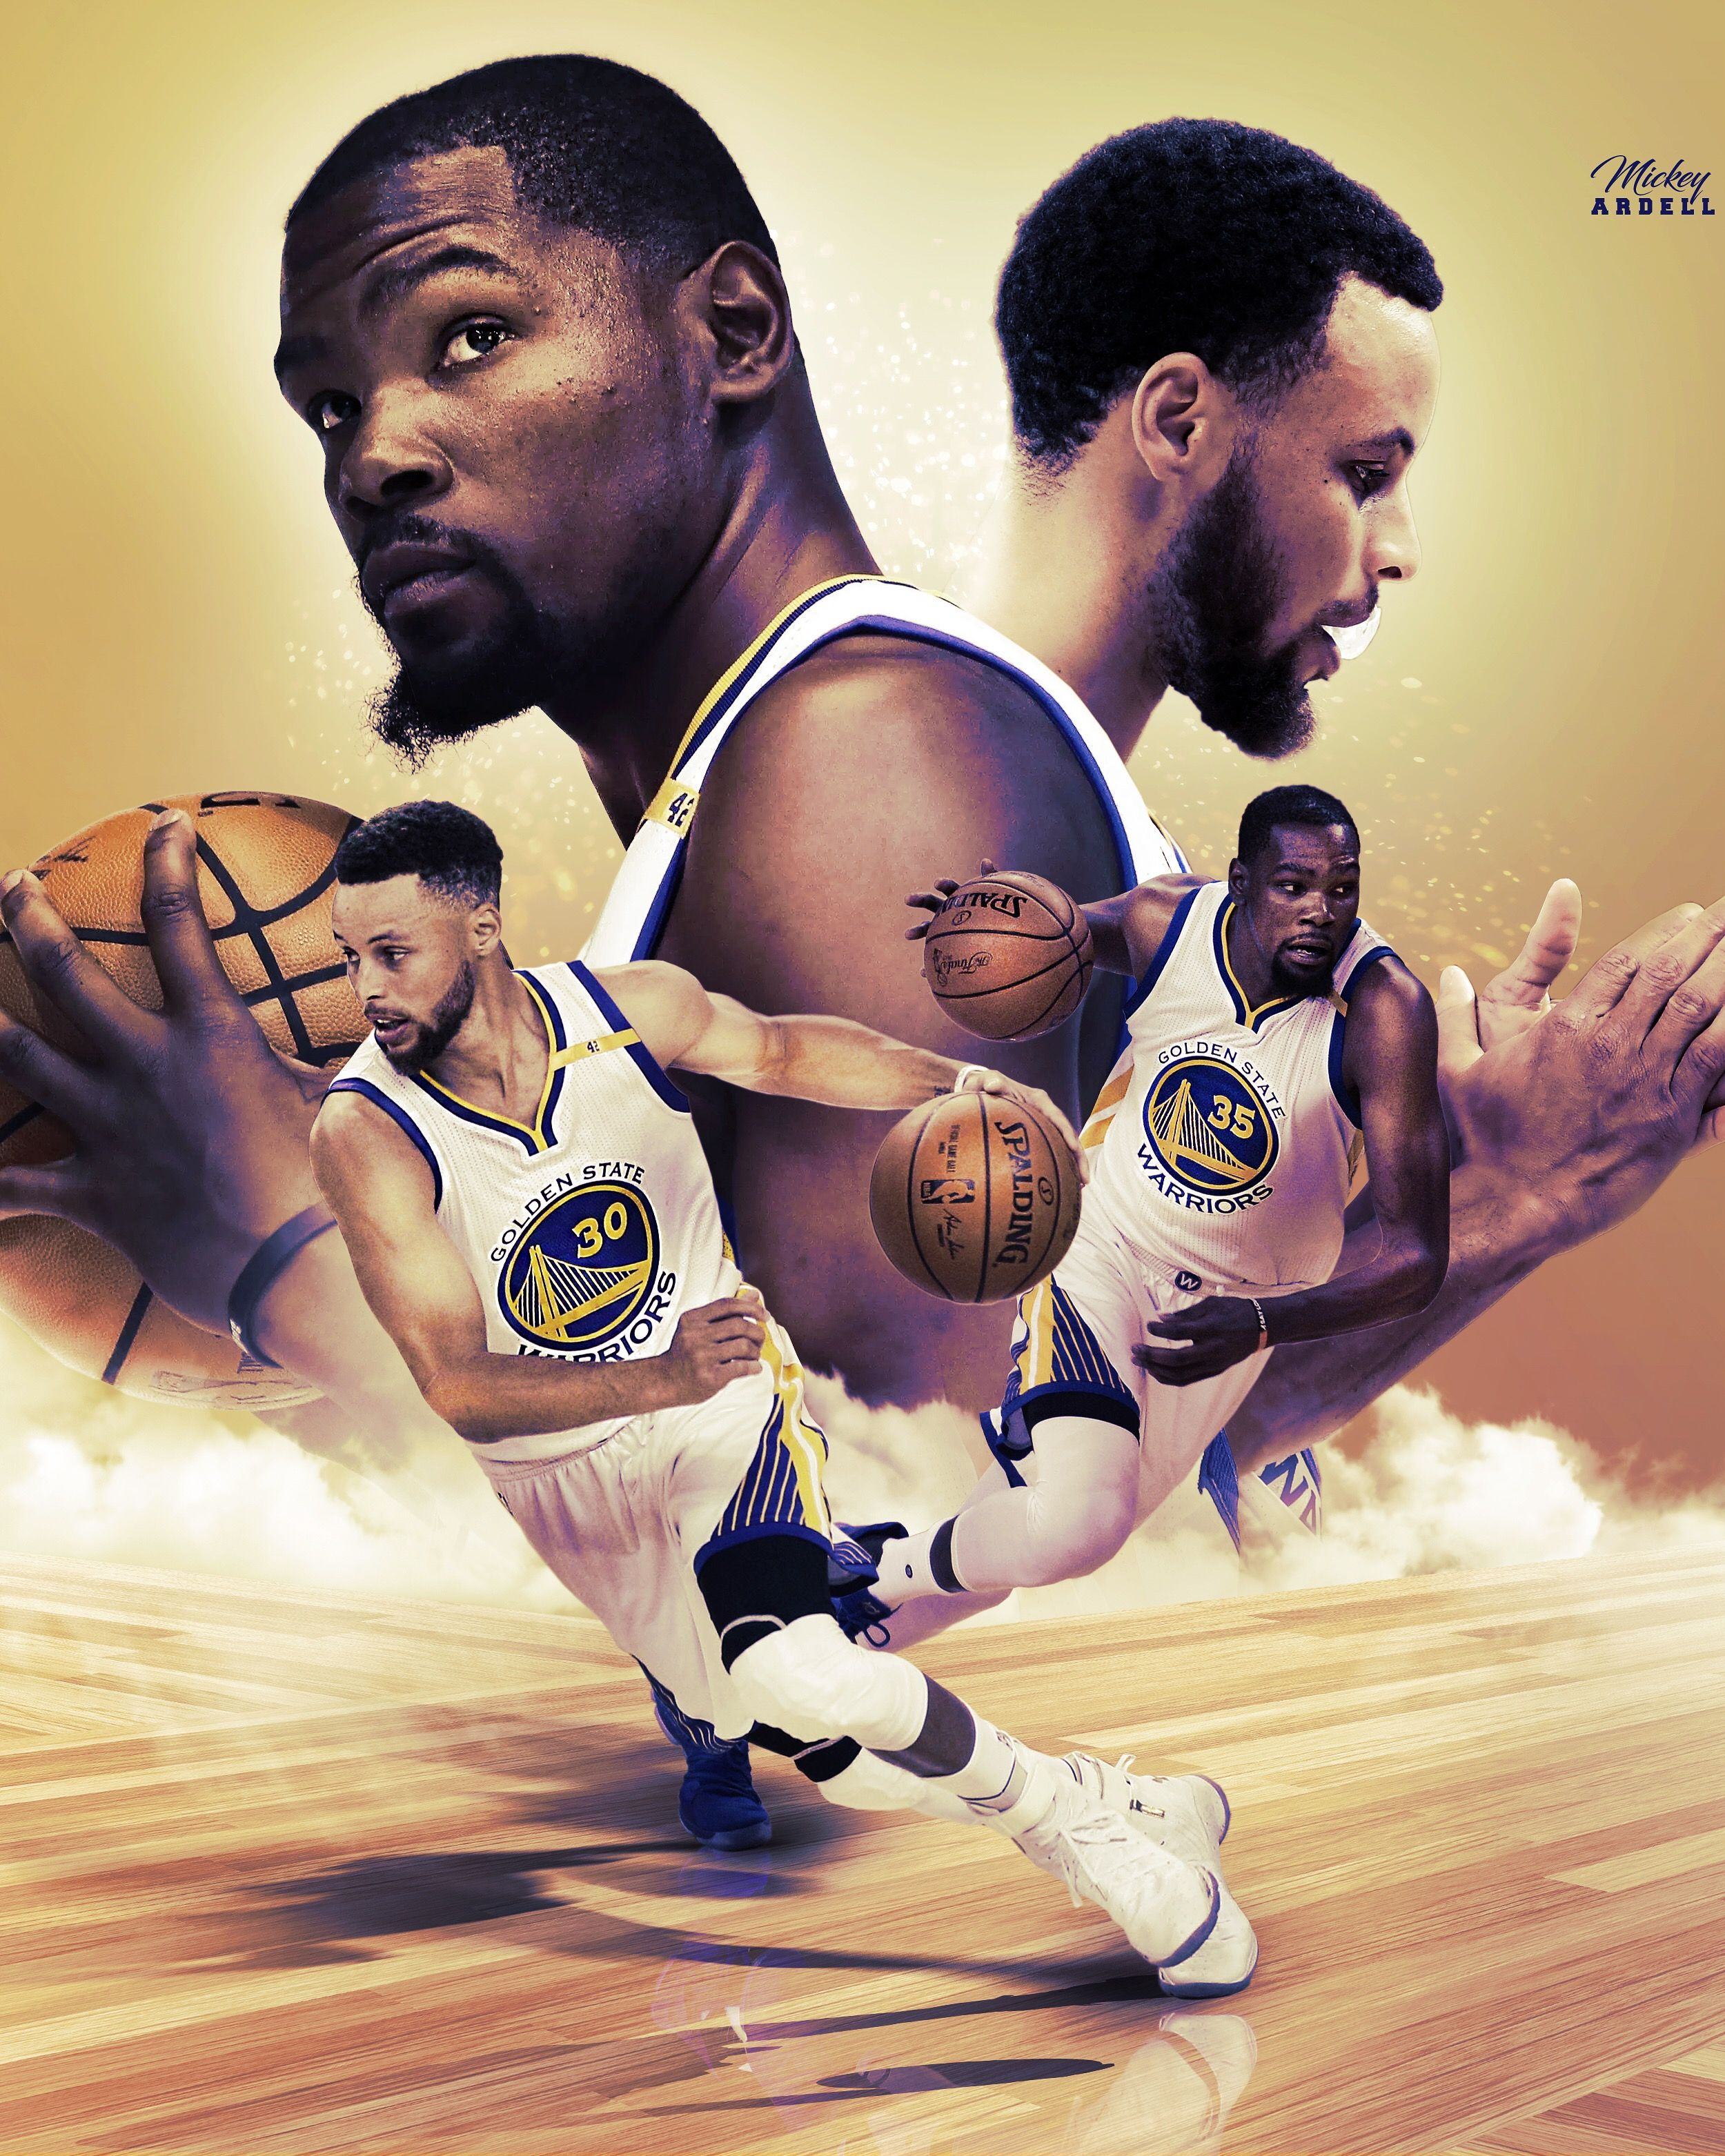 Kevin Durant Steph Curry Warriors Duo Nba Art Wmcskills Curry